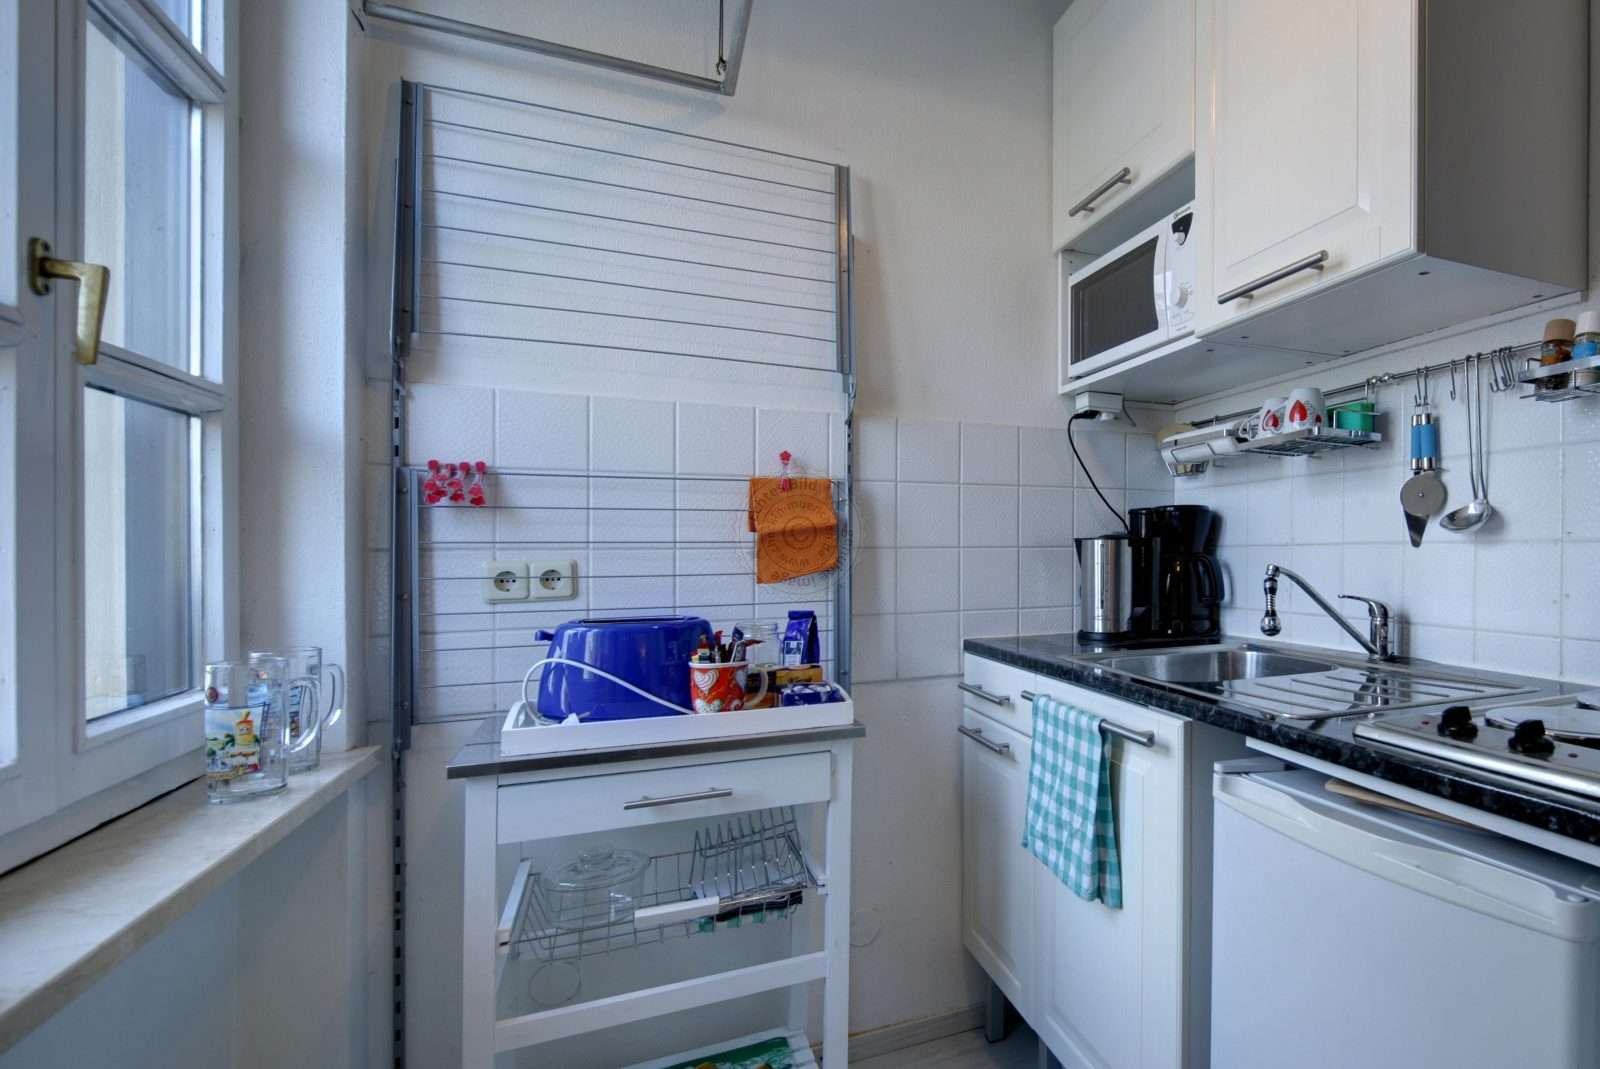 Own small kitchen with complete equipment